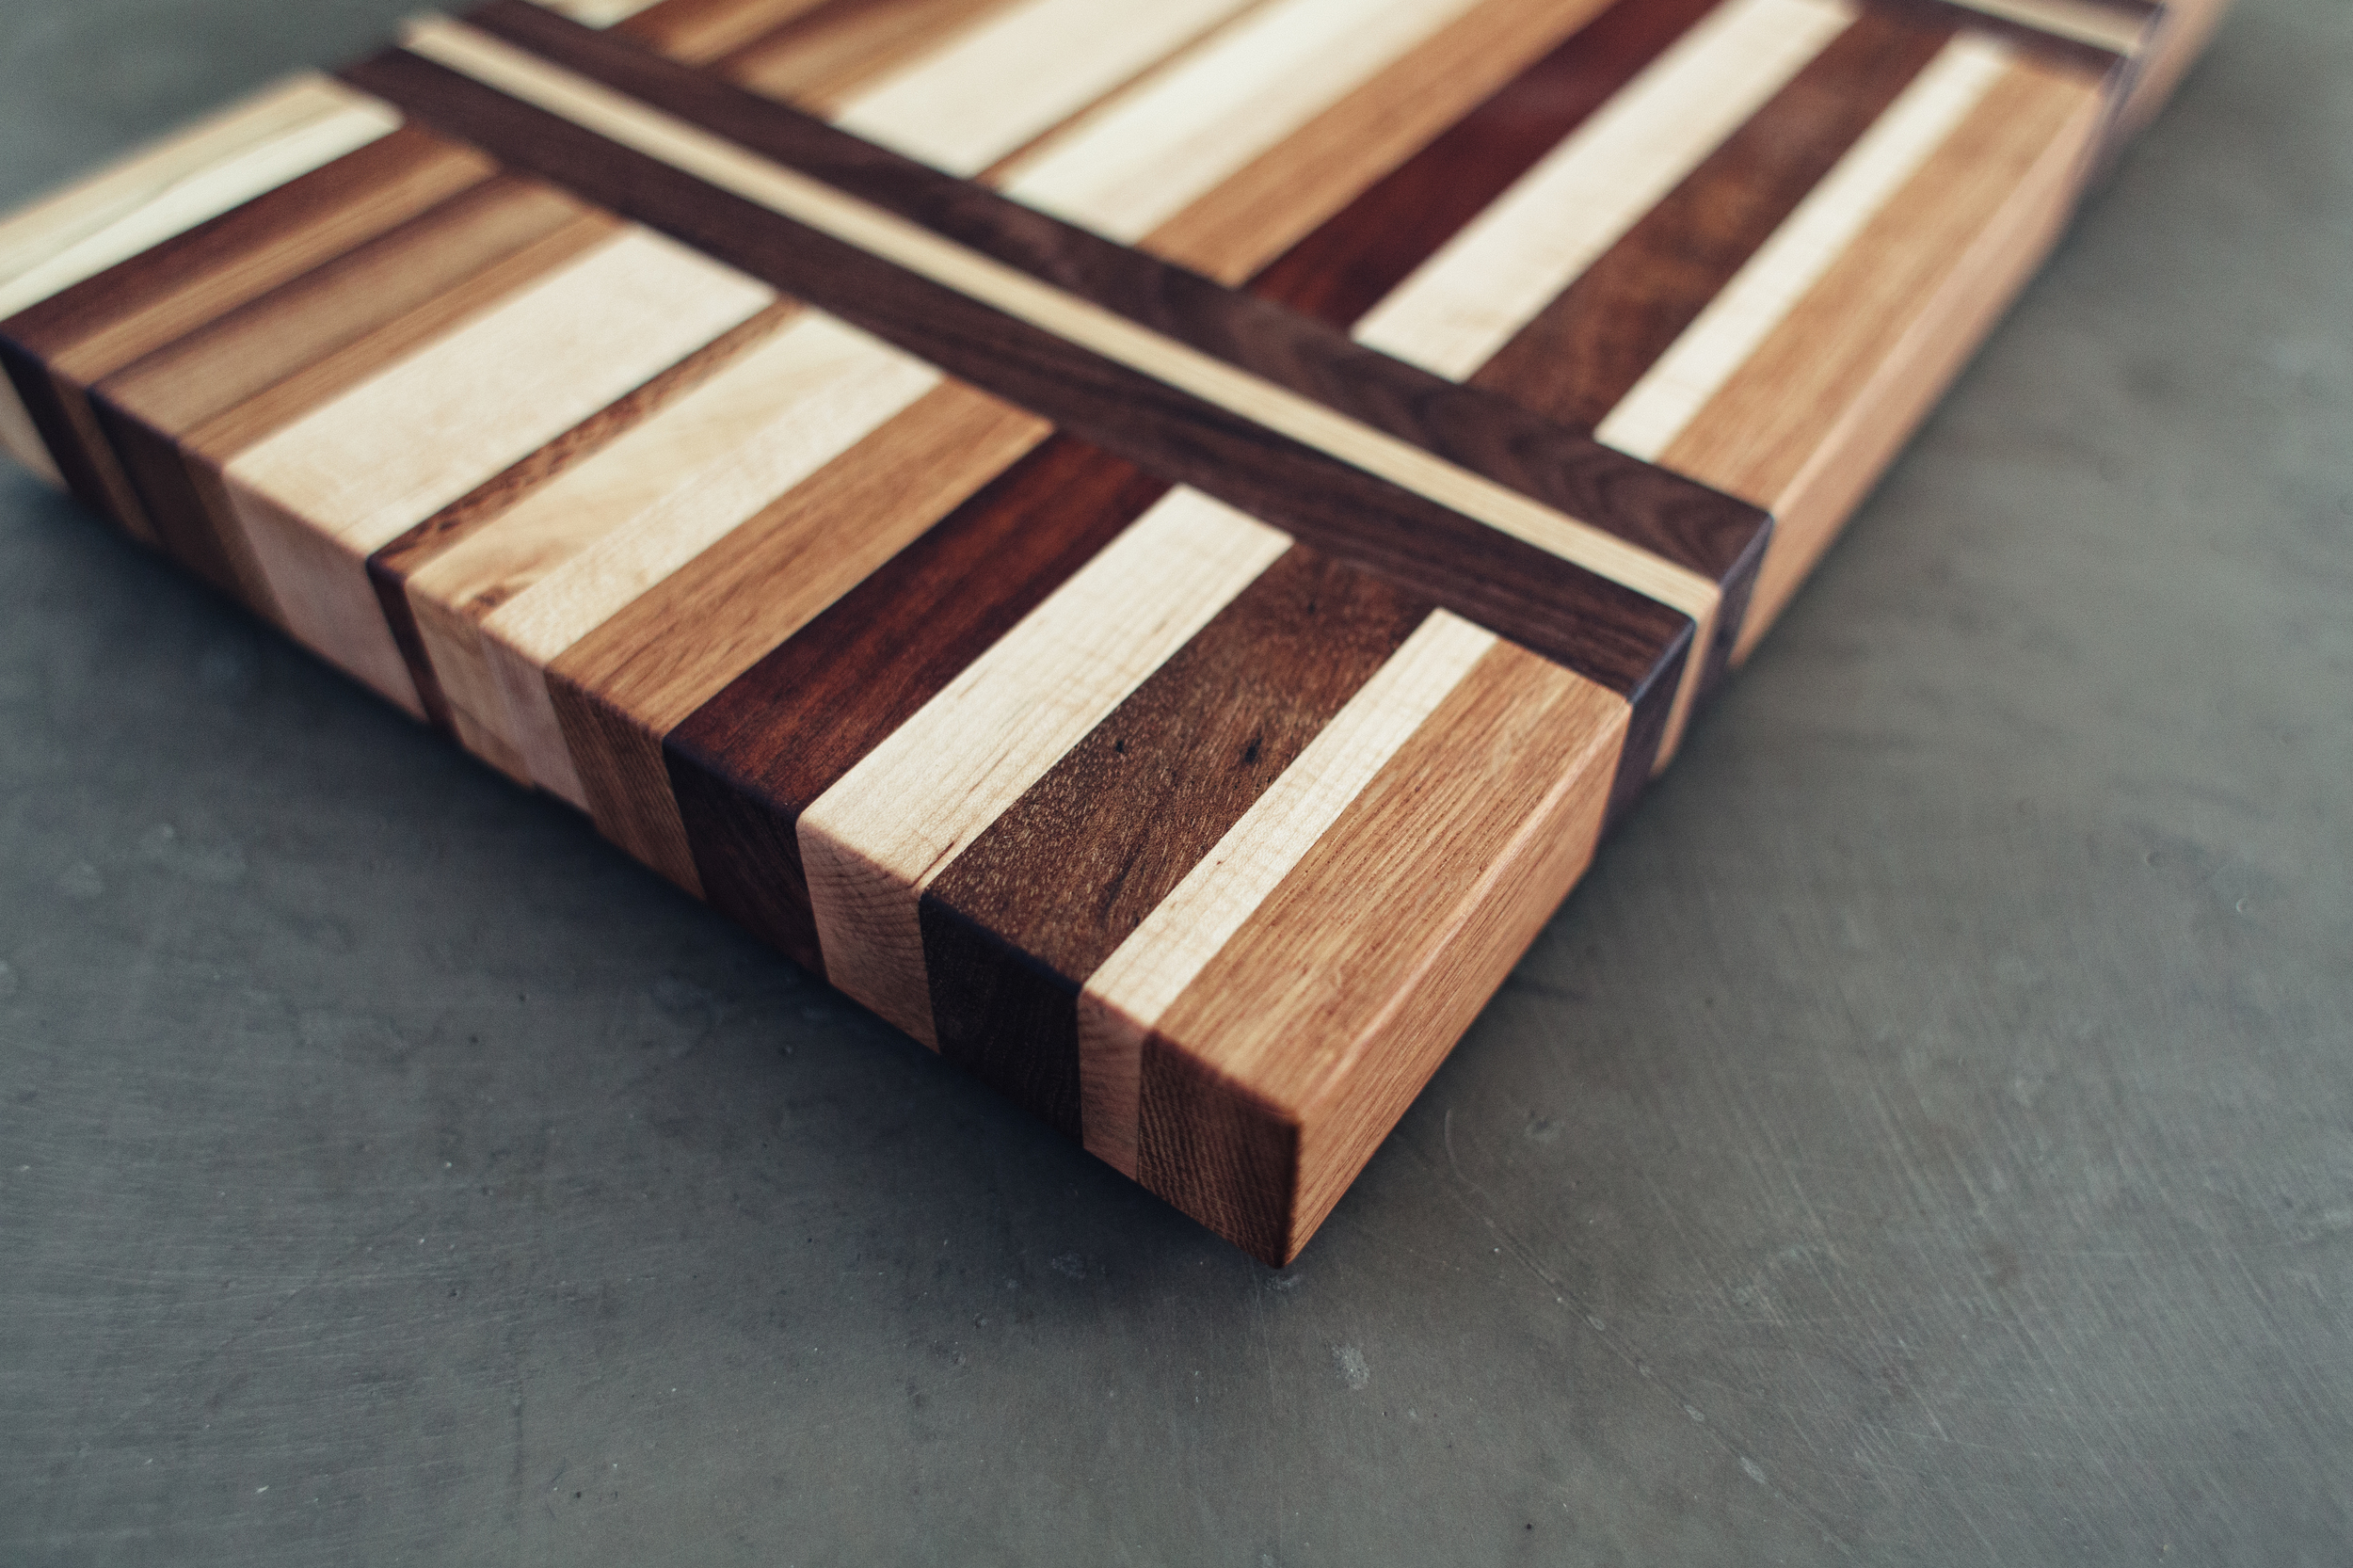 custom cutting board - Ellen-5.jpg